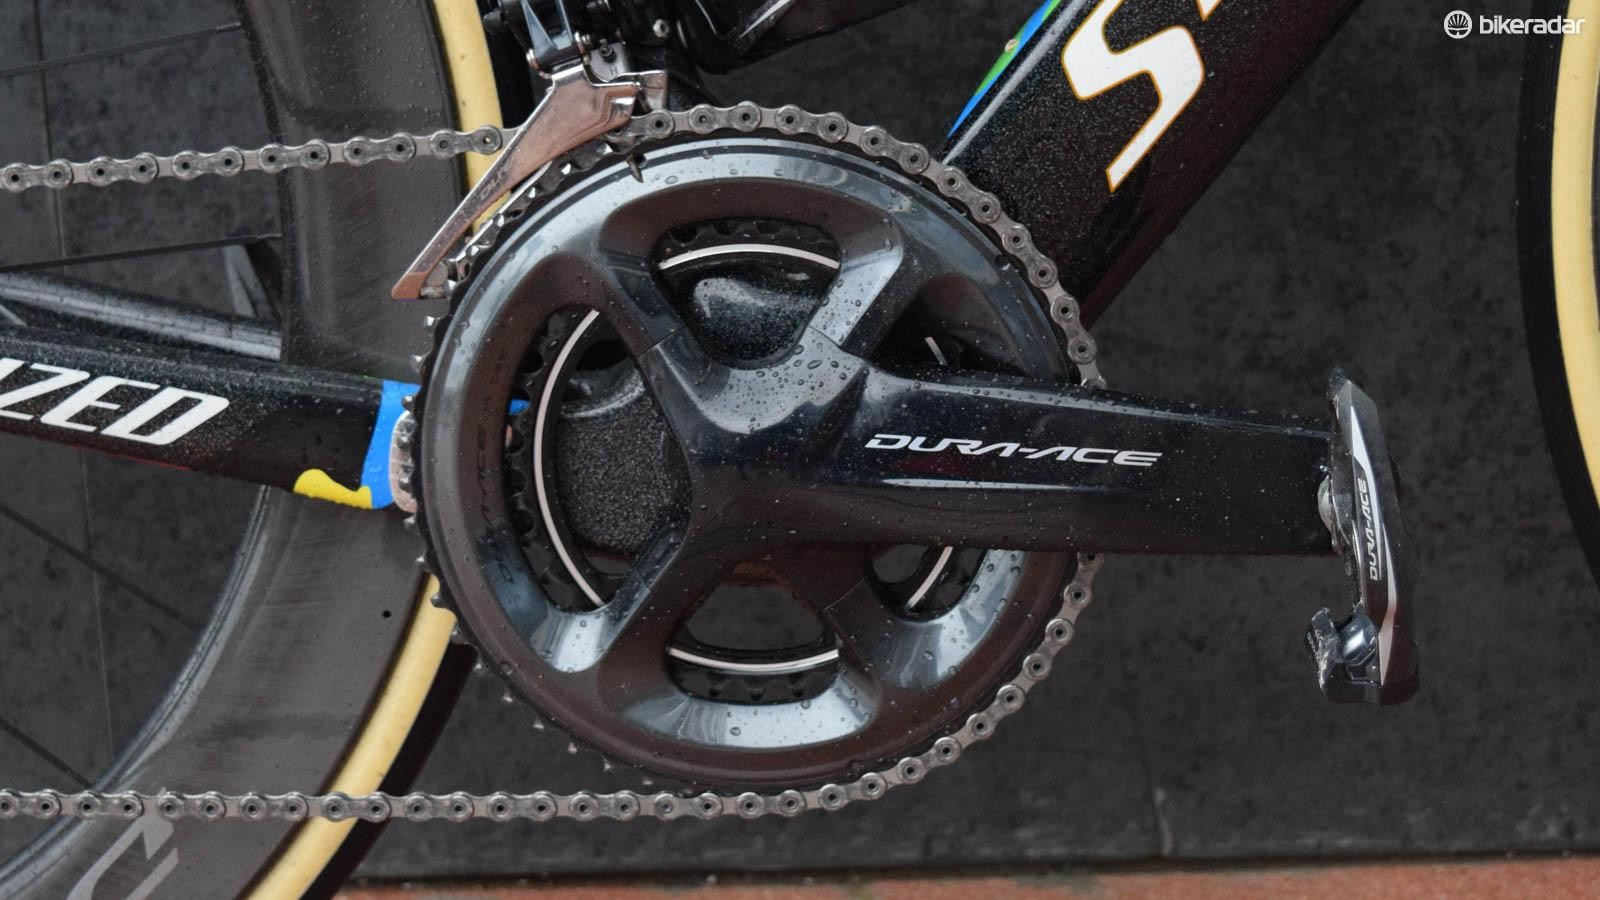 Dura-Ace R9100 is Shimano's flagship road groupset